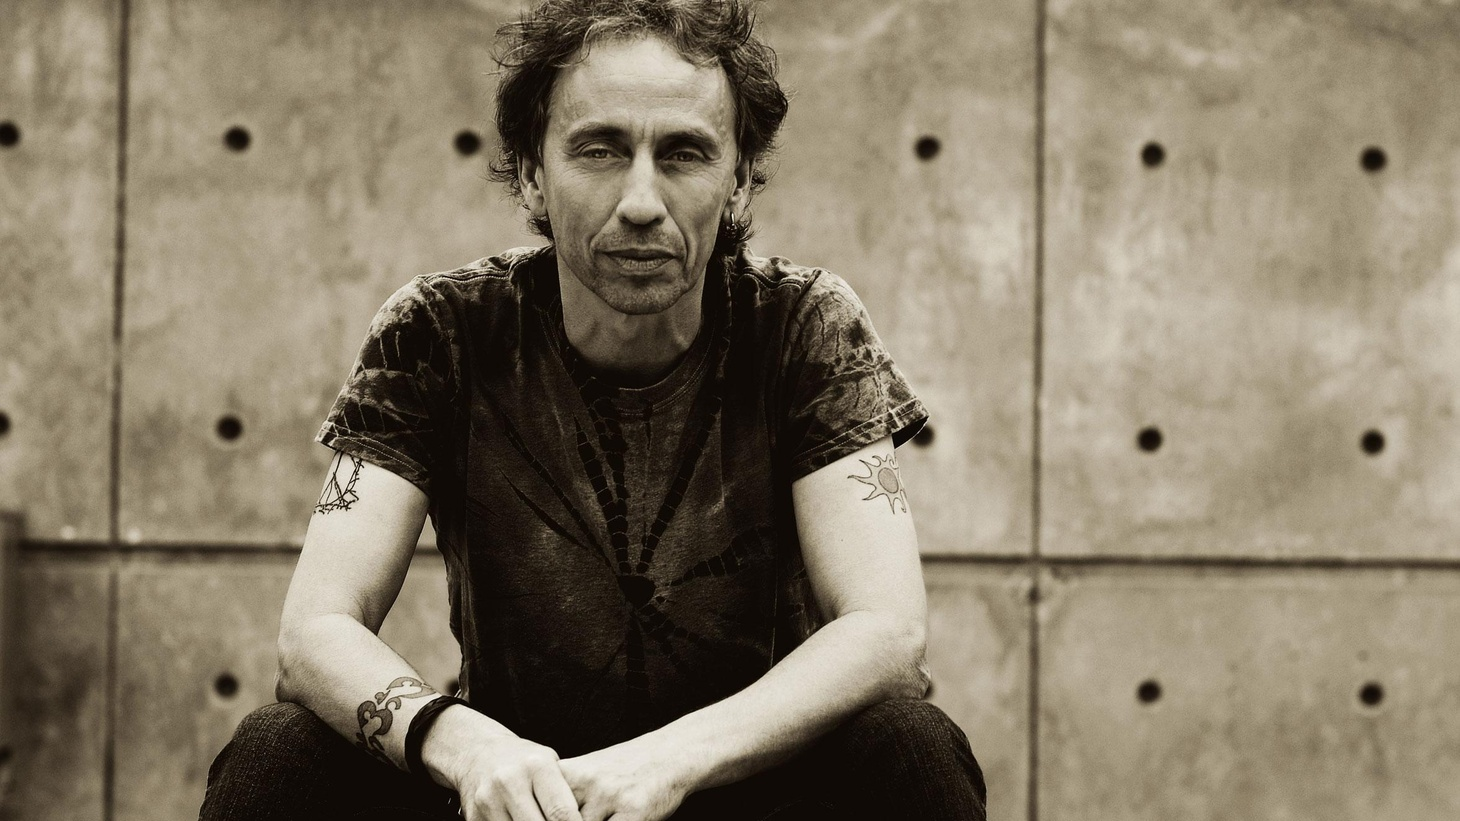 On this edition of Sounds Eclectic, host Nic Harcourt plays new, upcoming and recent releases from Ratatat, Calexico, and the latest from Patti Smith. Plus a live in-studio performance from Trash Can Sinatras, all this and much more on the next Sounds Eclectic.